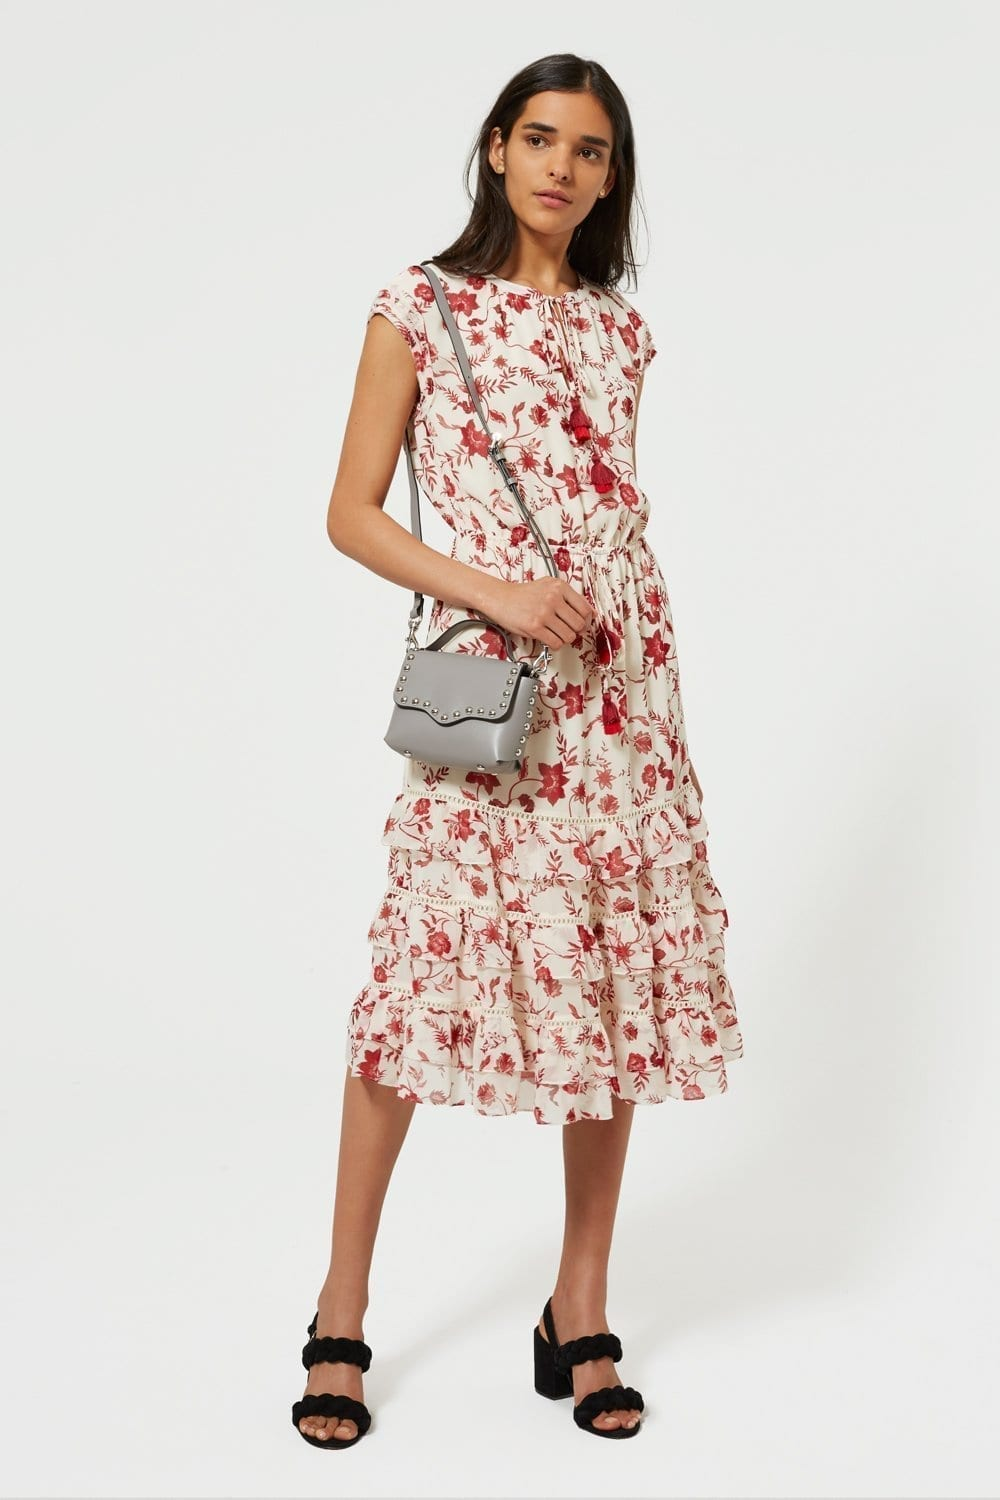 REBECCA MINKOFF Sophie Cream Floral Printed Dress